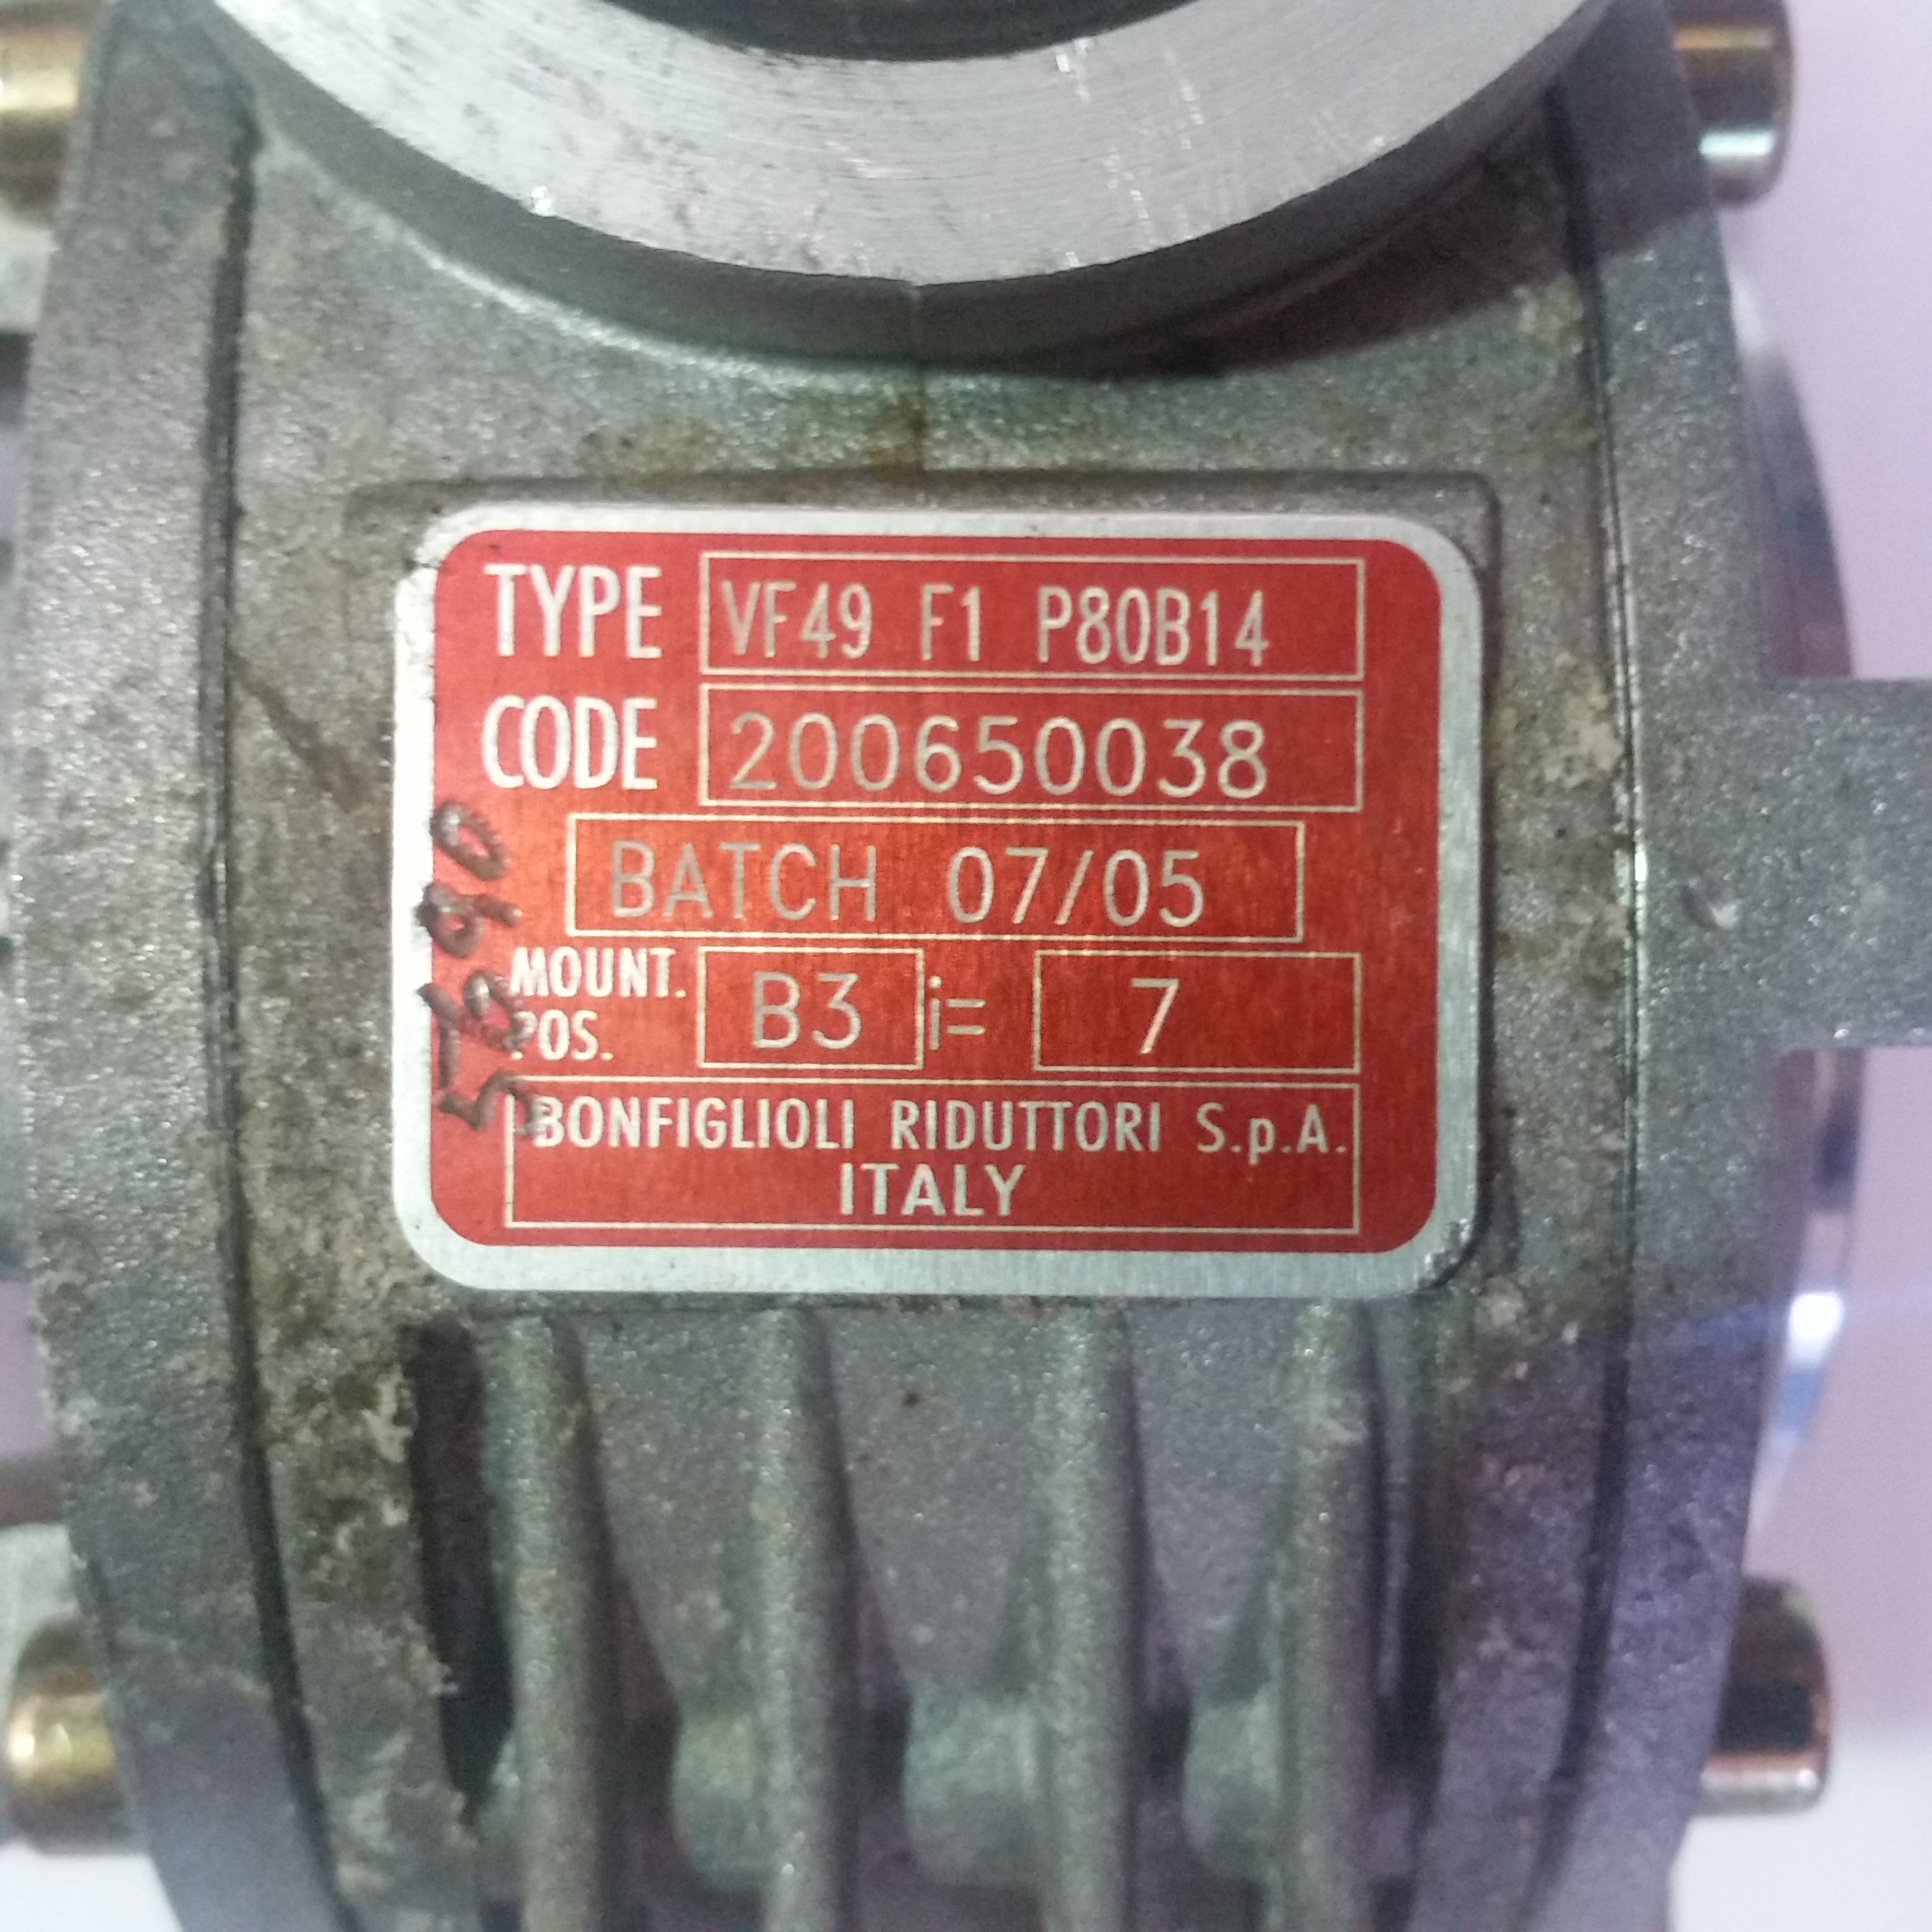 Bonfiglioli Gearbox Vf49 F1 P80b14 With Side Mount Flange